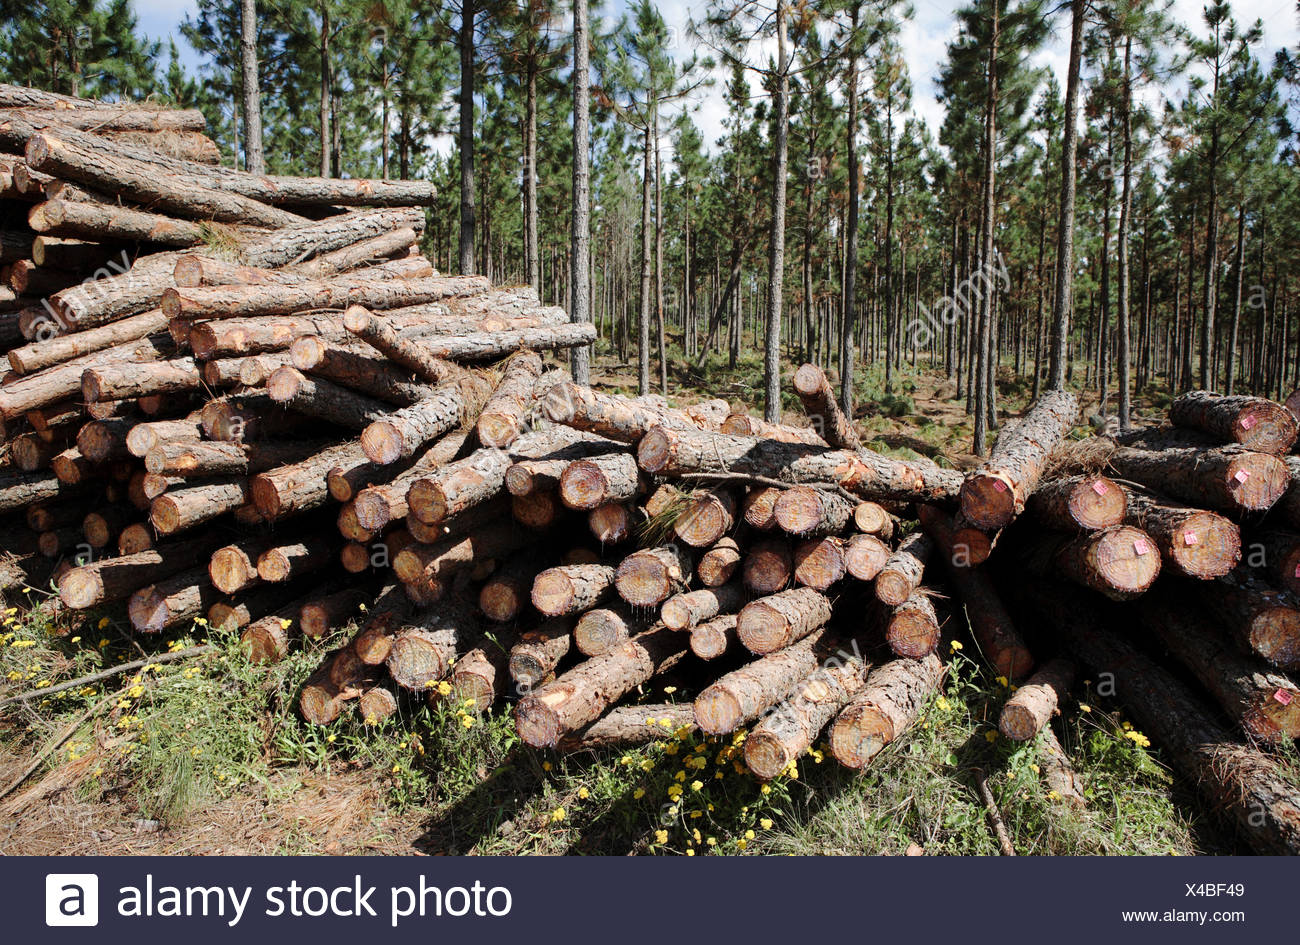 nobody, no one, no-one, outdoors, outside, day, pile, conifer, pinus, trees, logs, felled, chopped, natural resources, deforestation, stack, industry, industrial, forestry, botany, botanical, flora, plants, plant - Stock Image